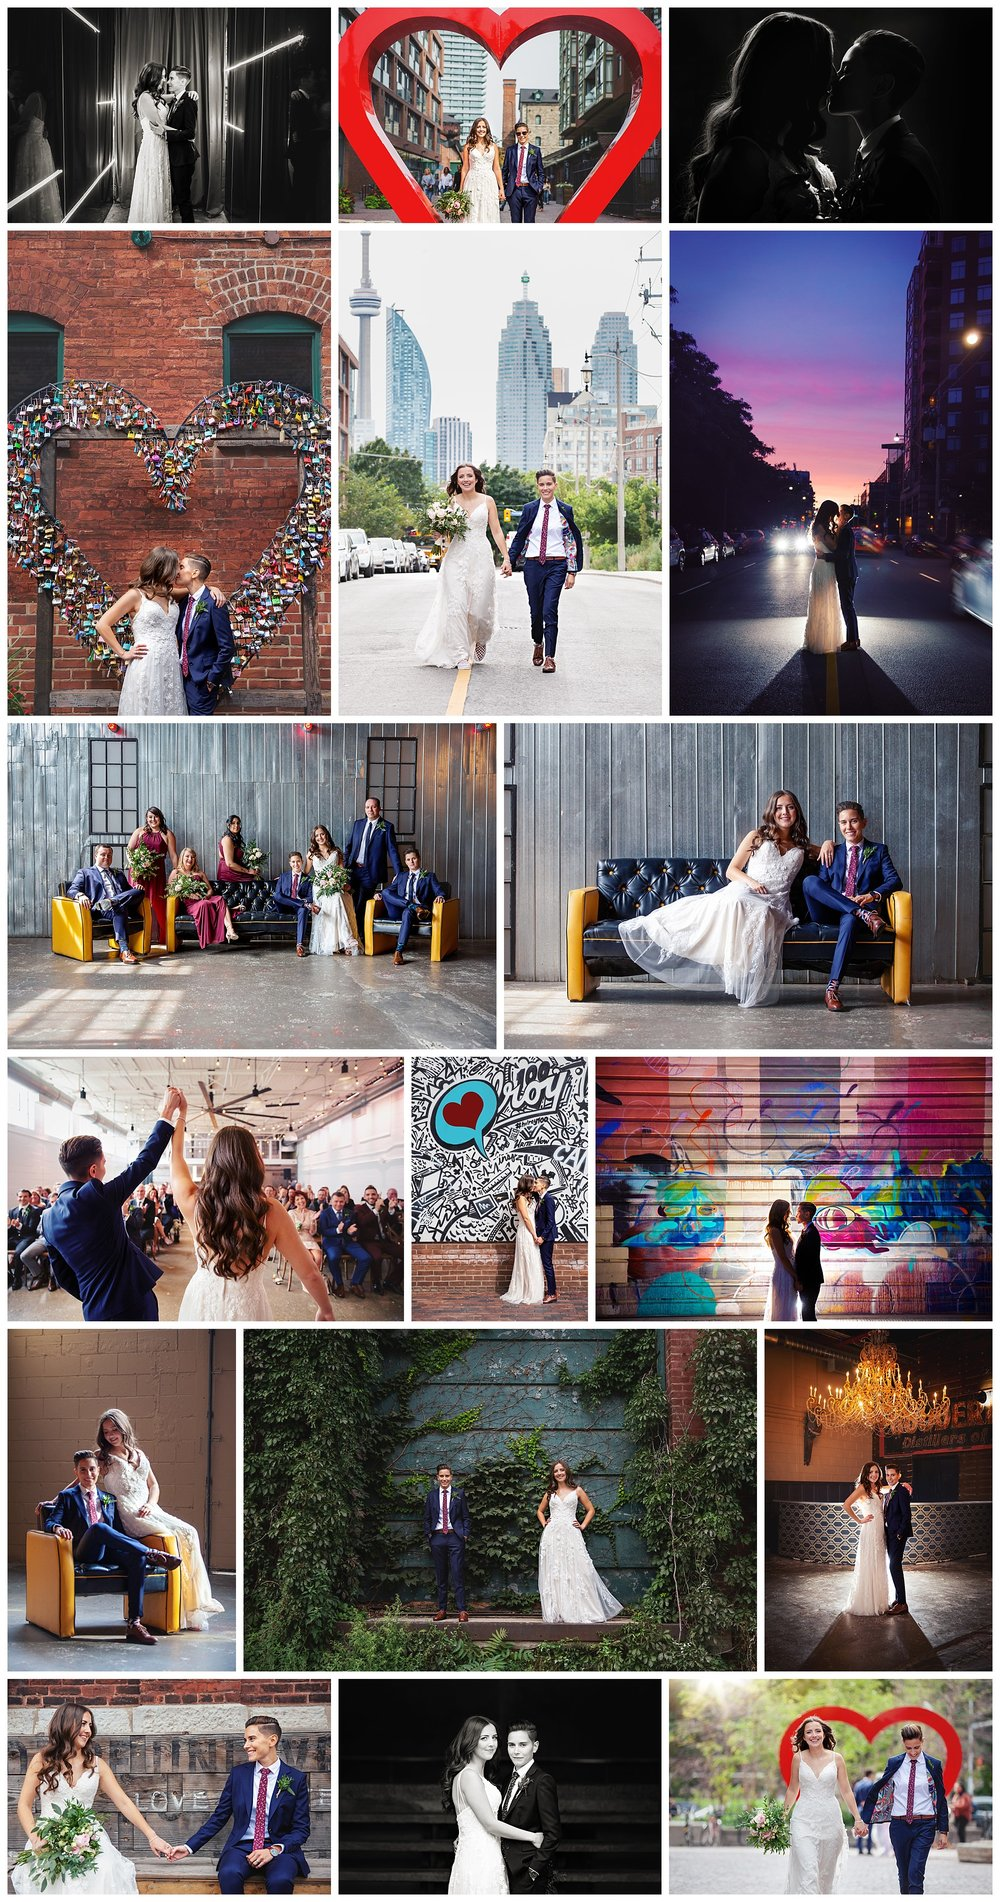 Airship 37 & Distillery District, Toronto, Ontario wedding photography by VanDaele & Russell